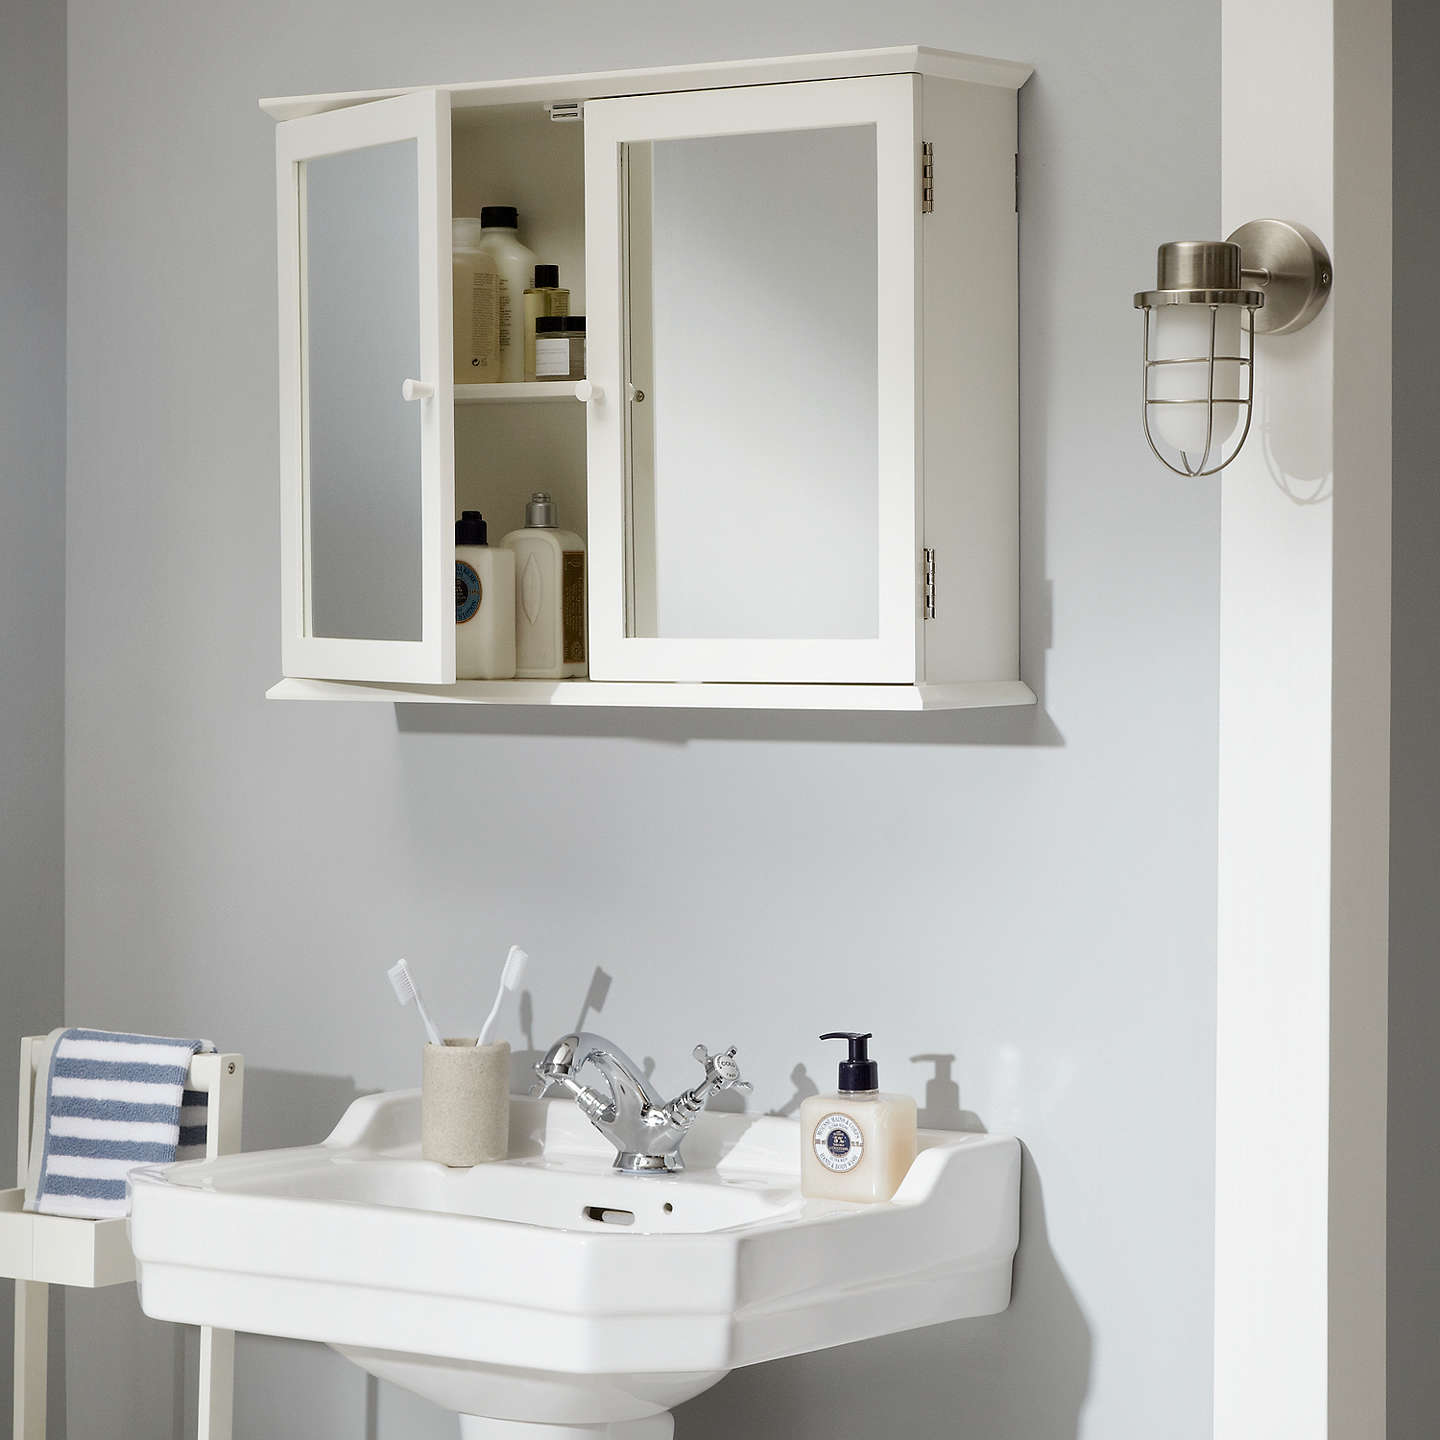 frames mirror bathroom custom design and pin selection of photo searching decor our inspiration browse are you for inspirations mirrors ideas gallery